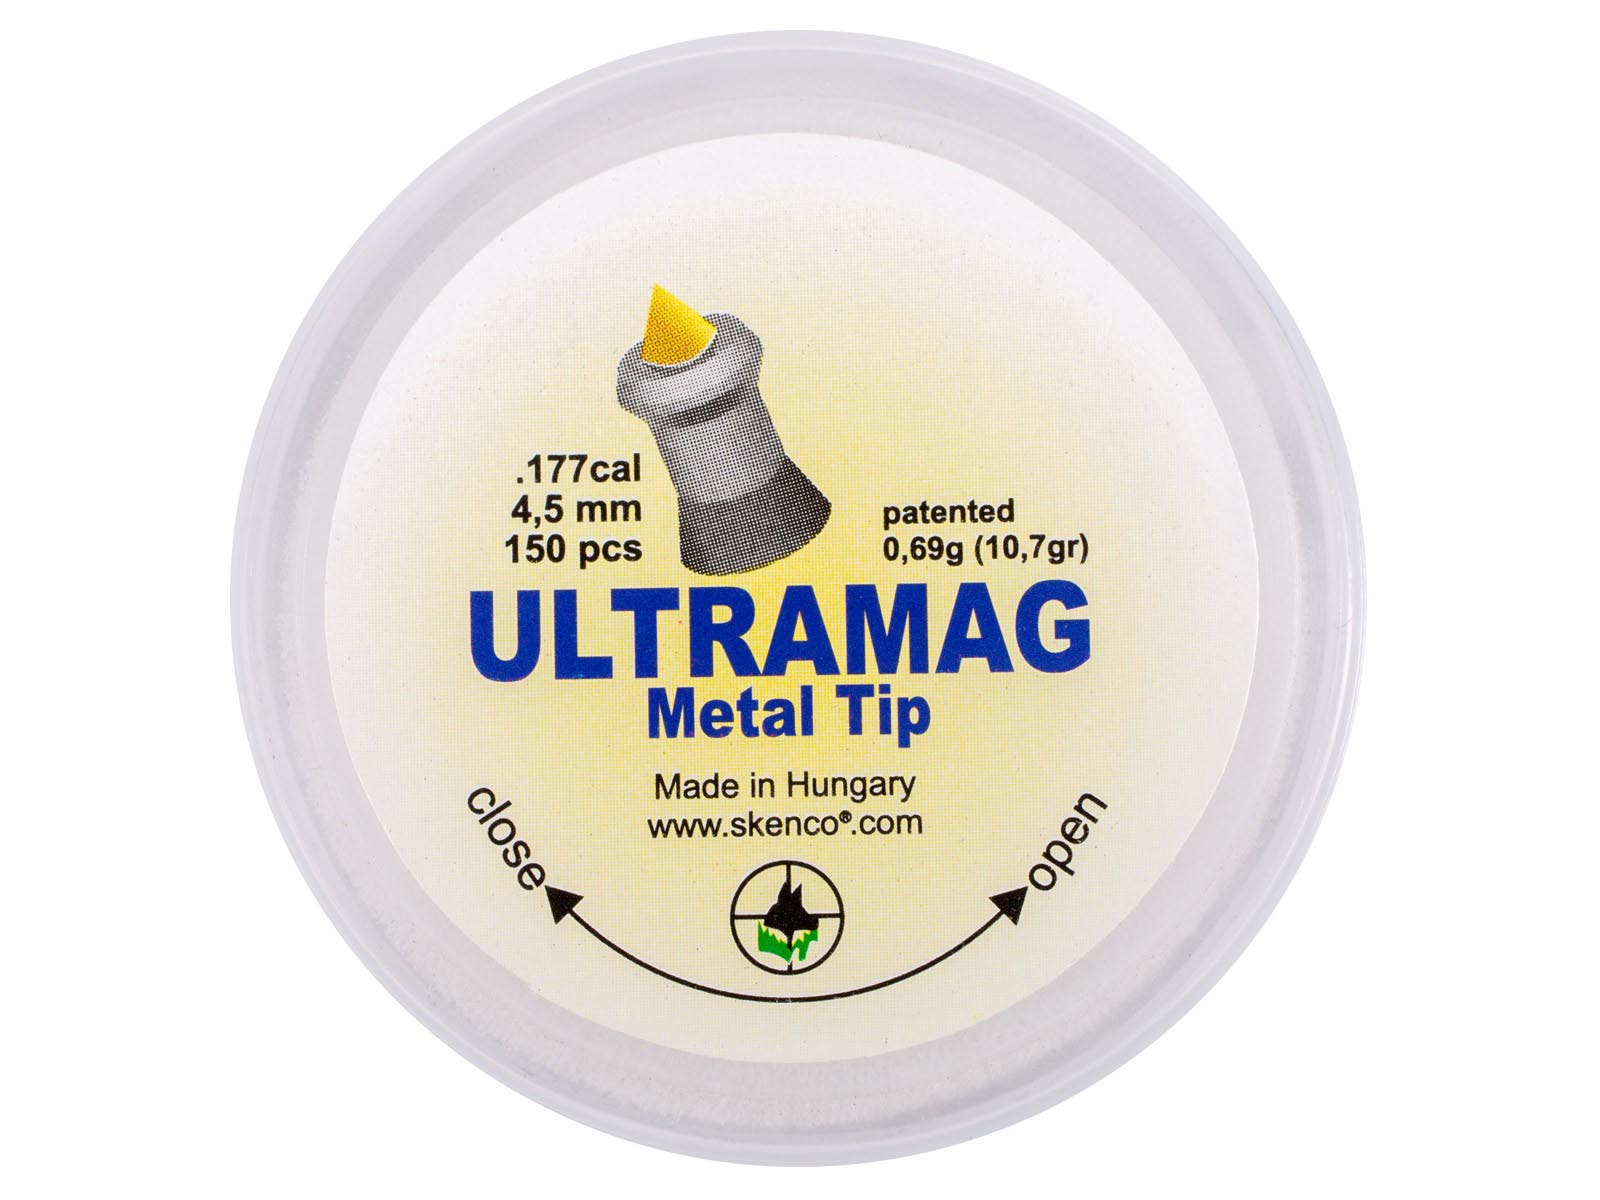 Skenco UltraMag Metal Tip .177 Cal, 10.7 gr - 150 ct